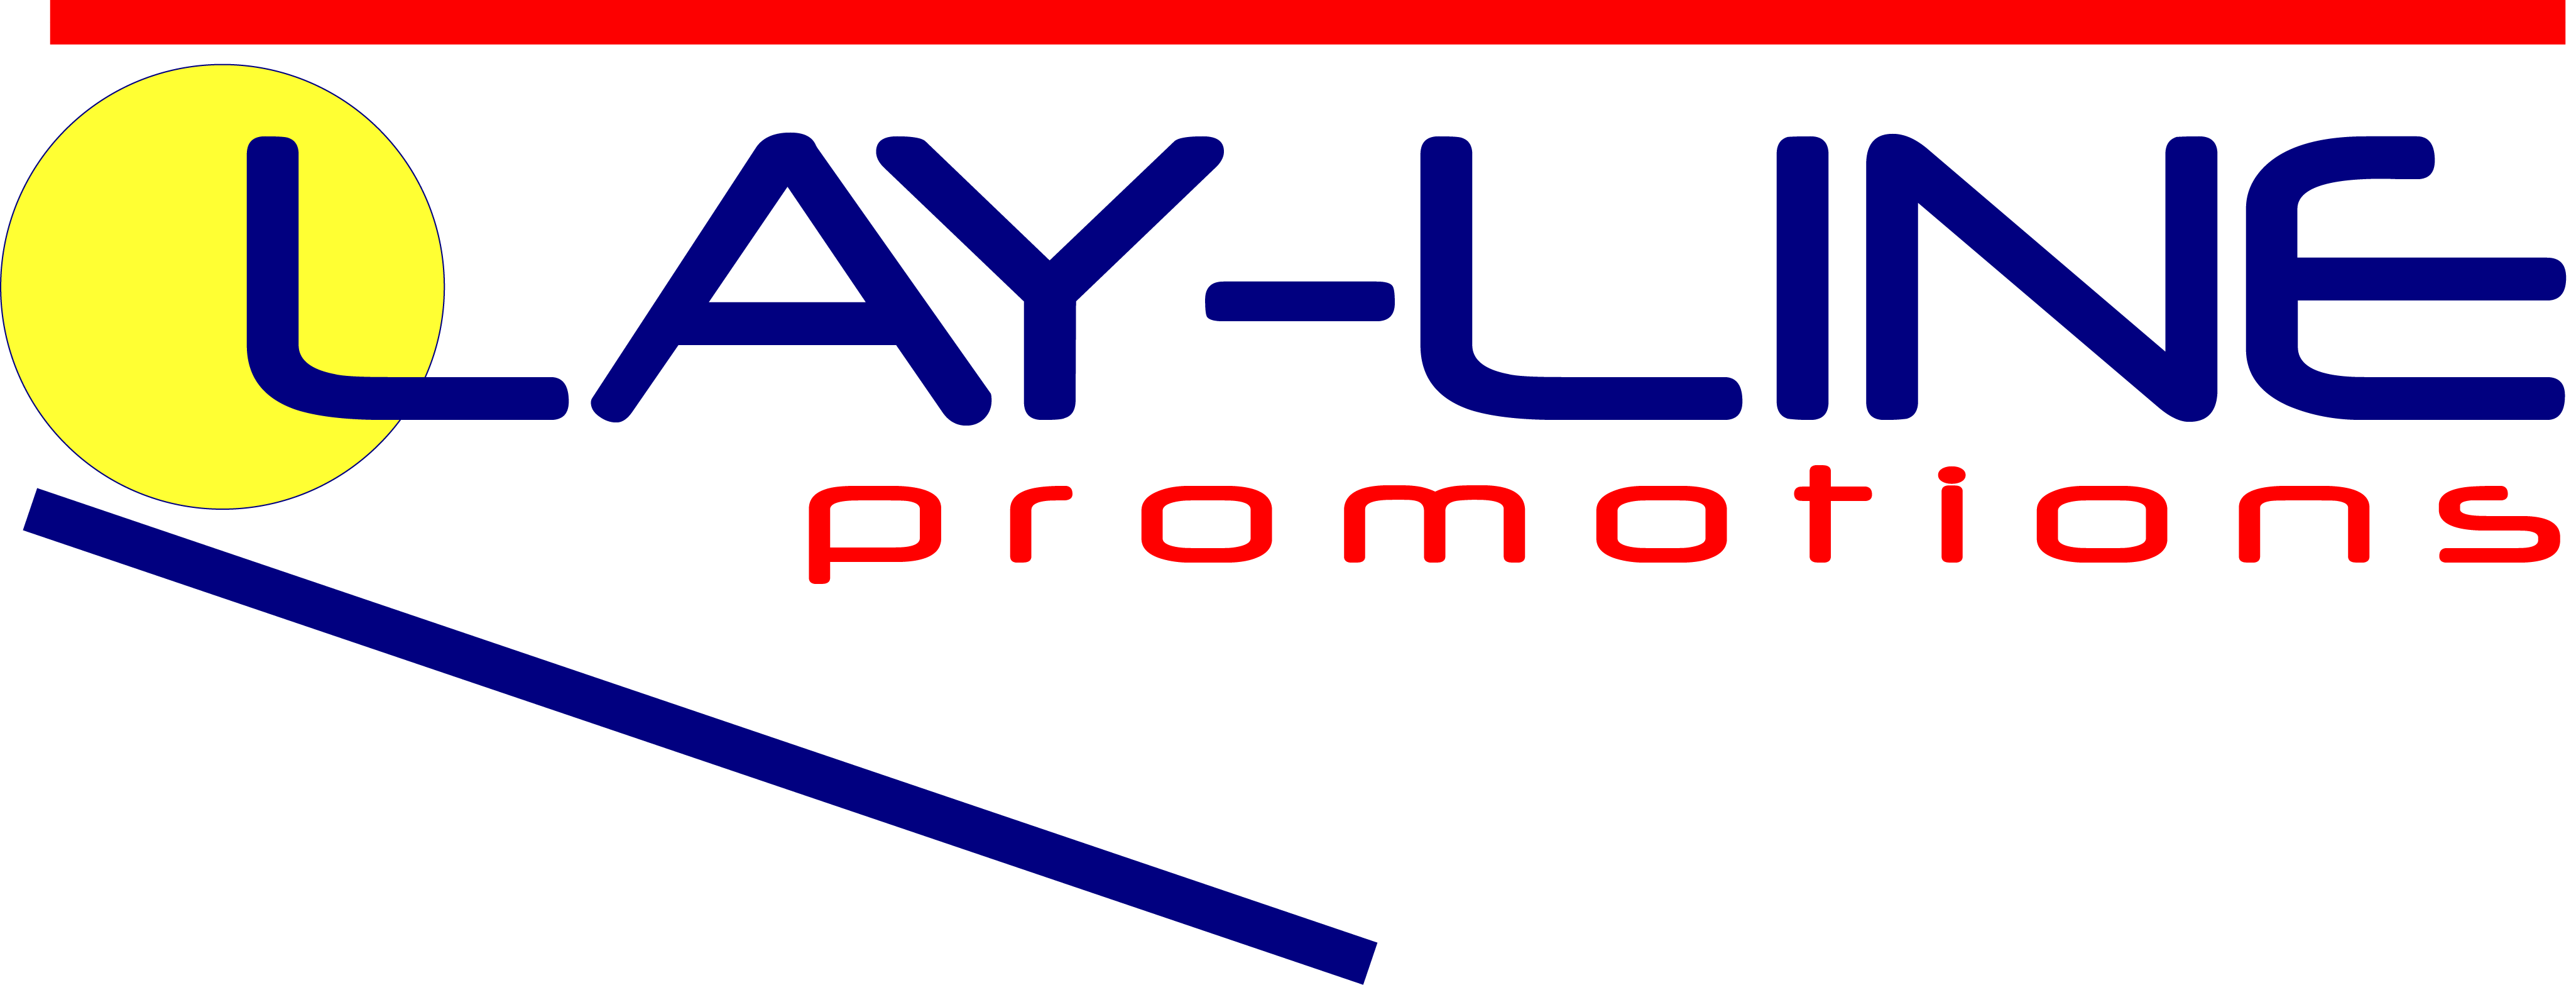 LayLinePromotions